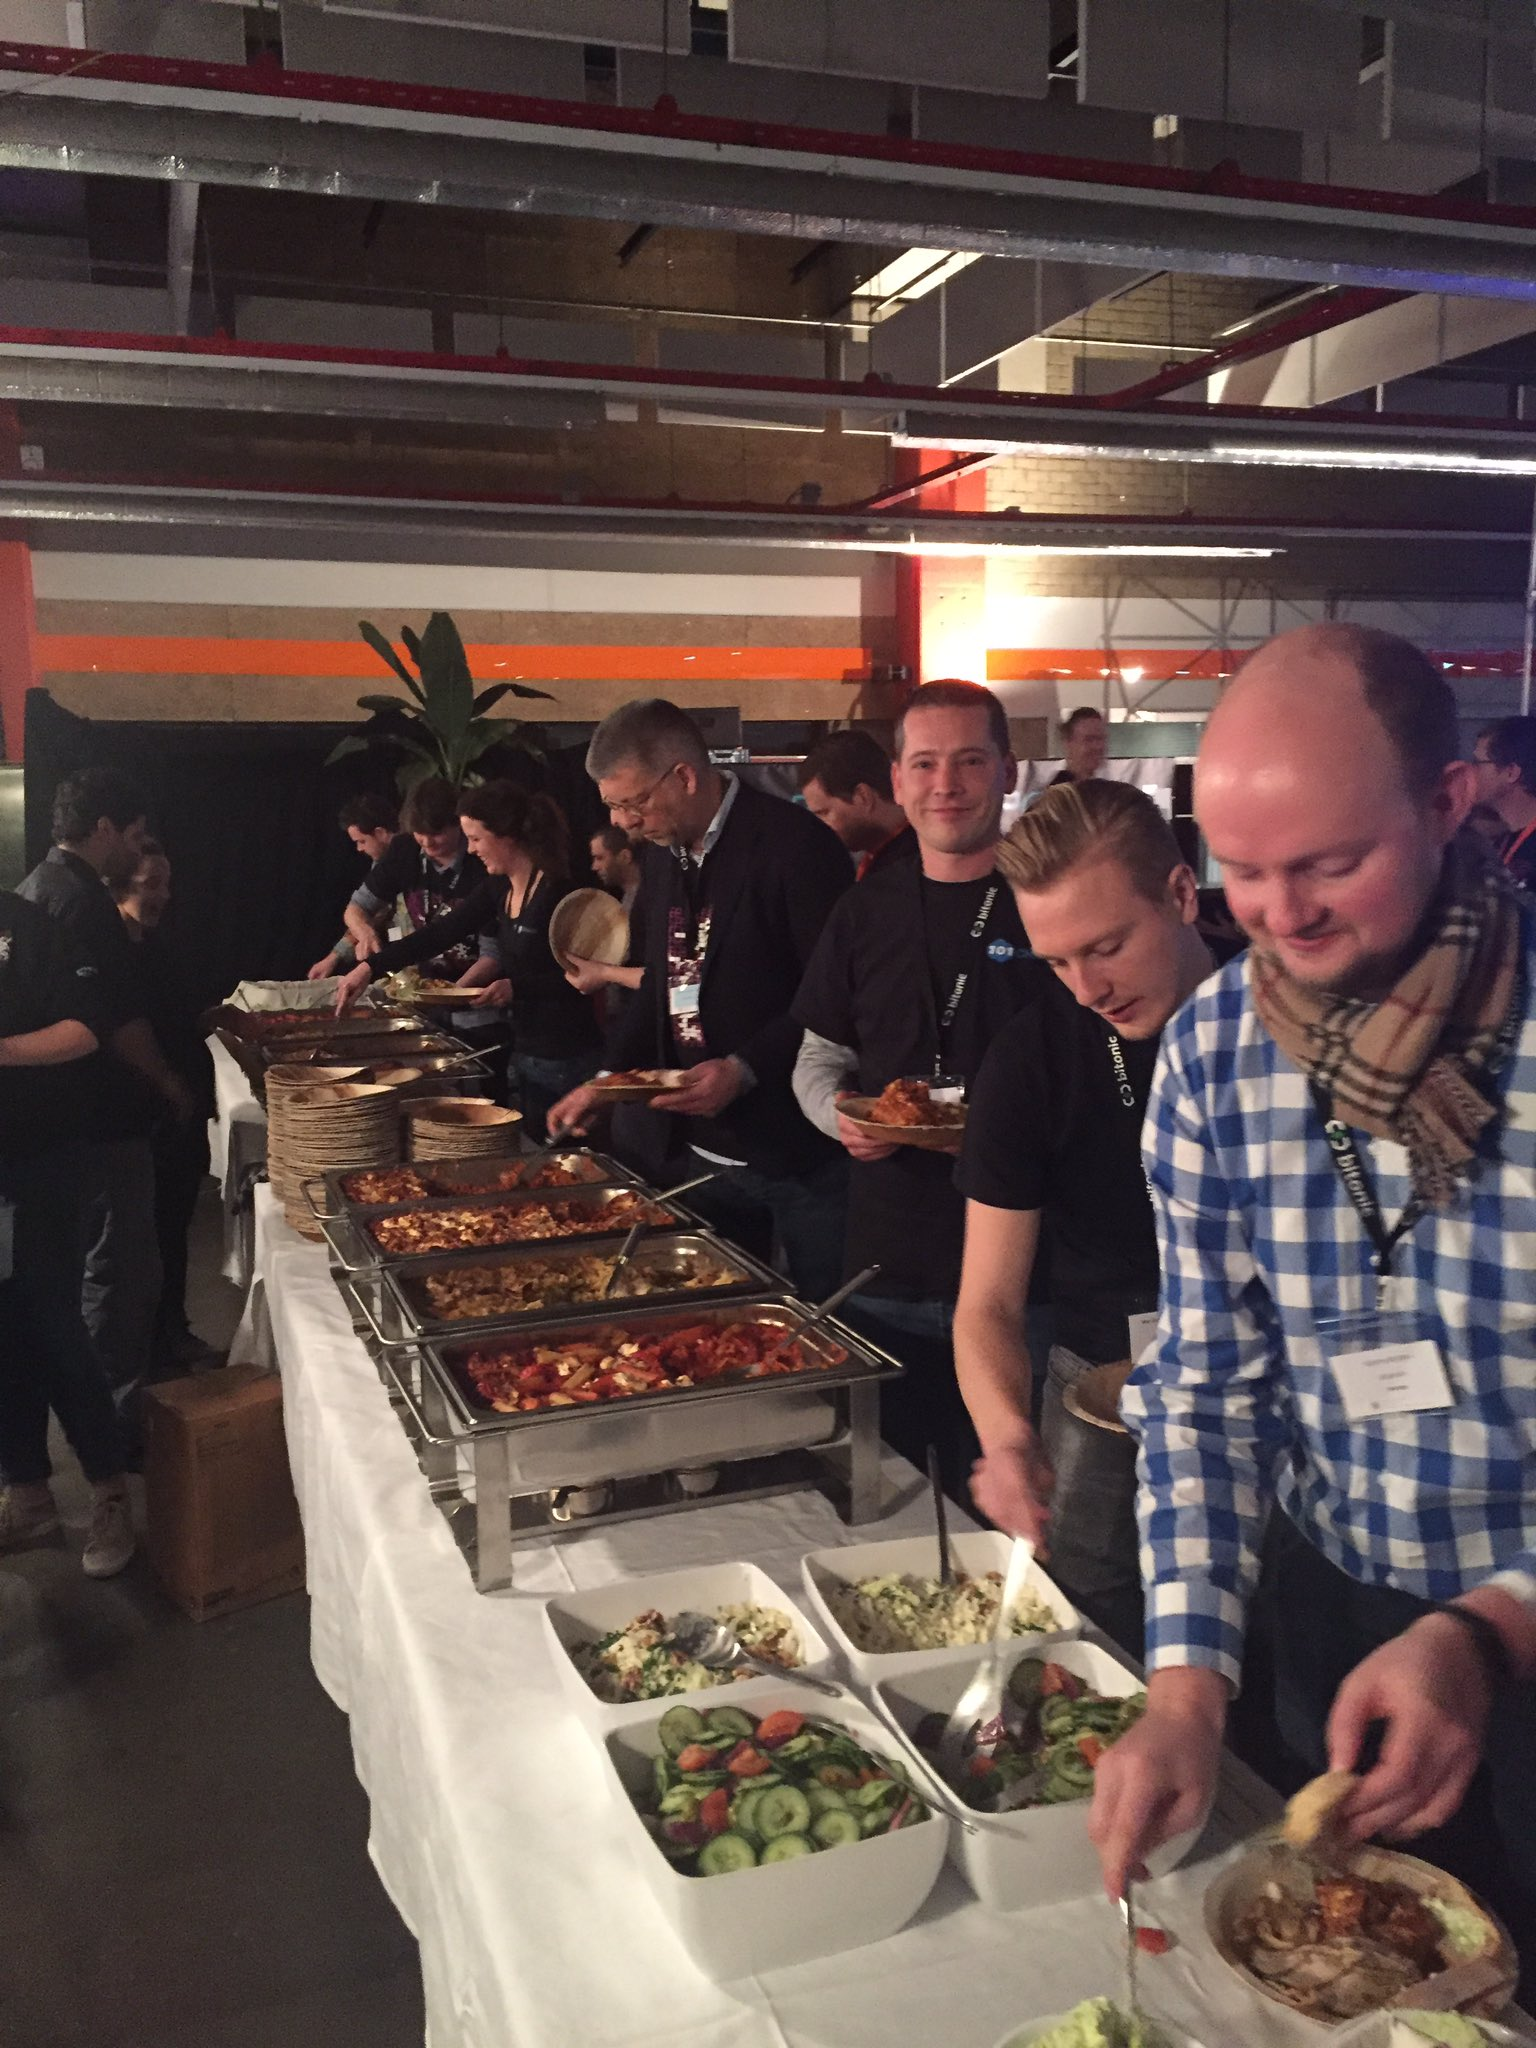 Dinner is served #dbh17 https://t.co/t2kWHaDivS